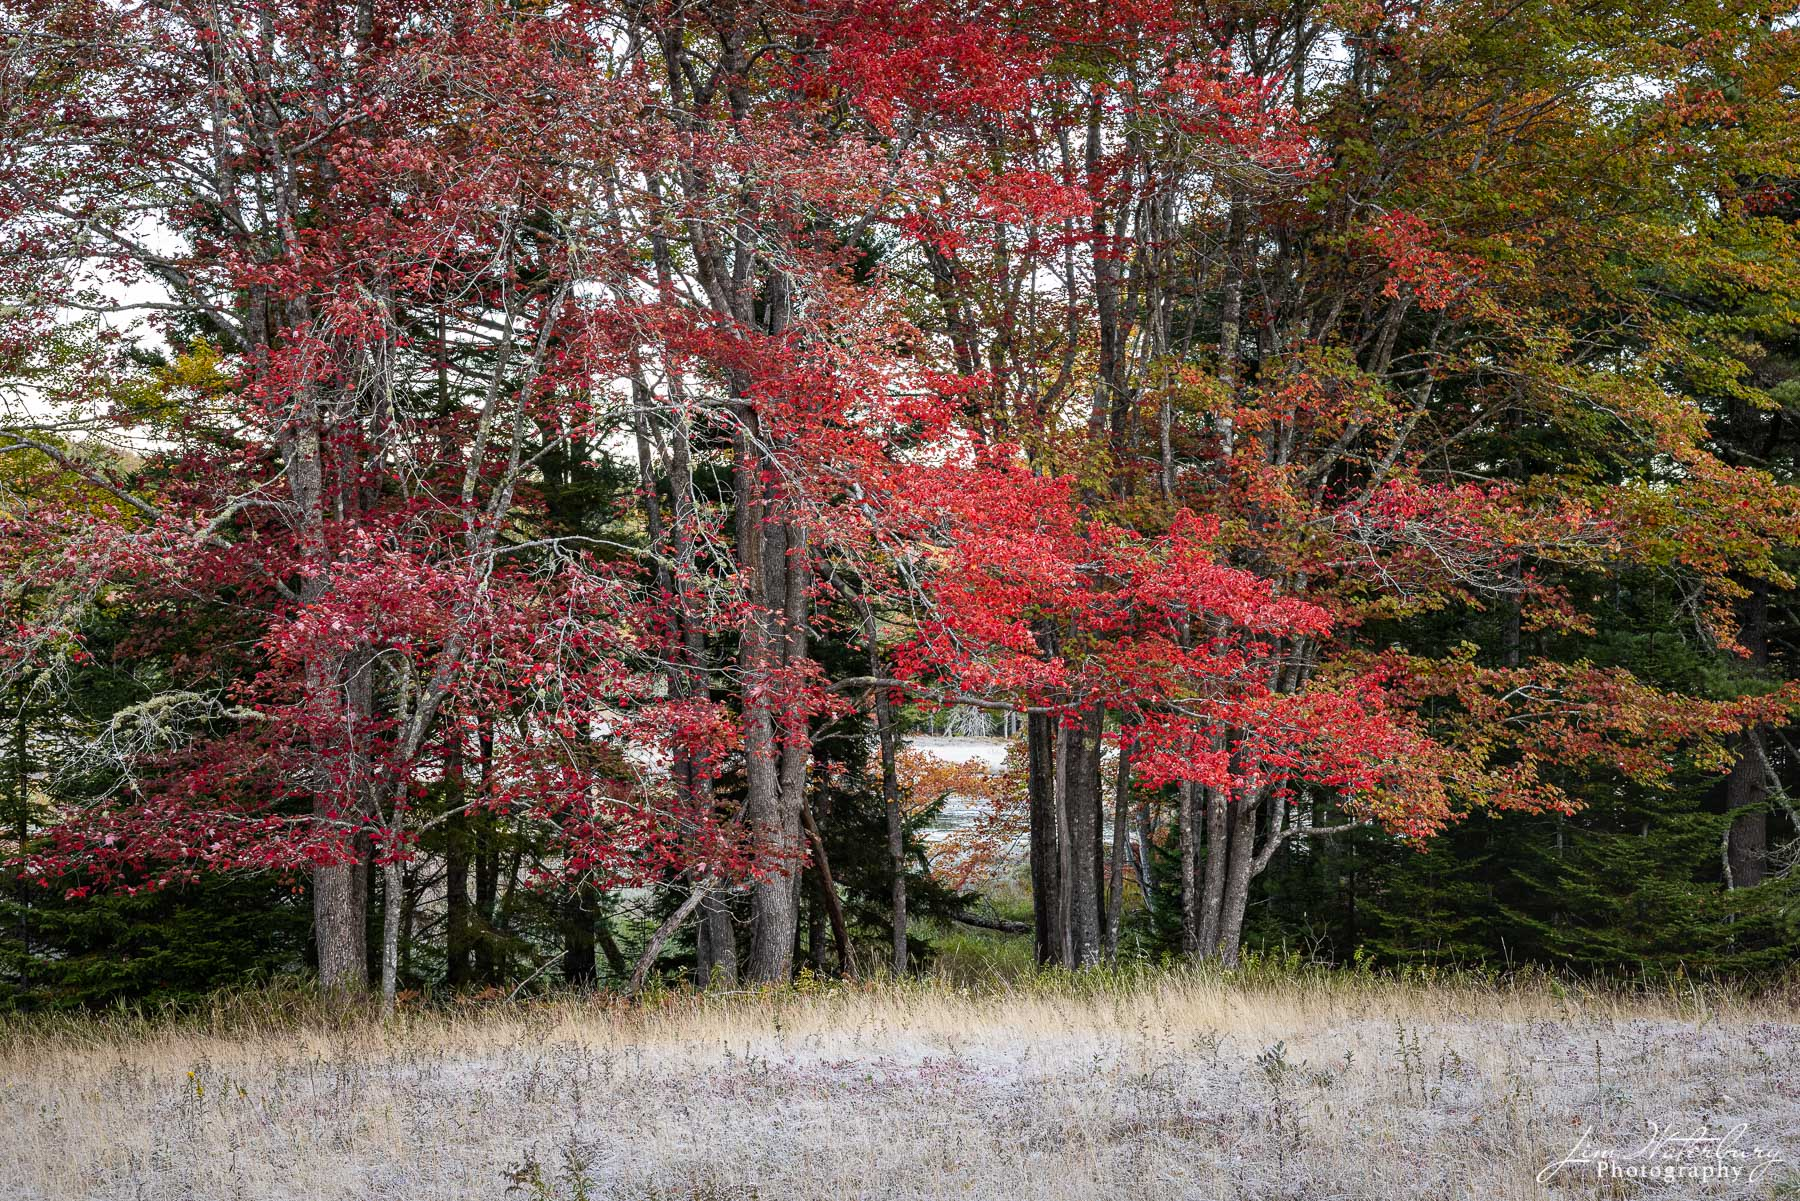 The first frost of the fall reminds us of the changing seasons, accented by the Christmas color -- bright red leaves set against...